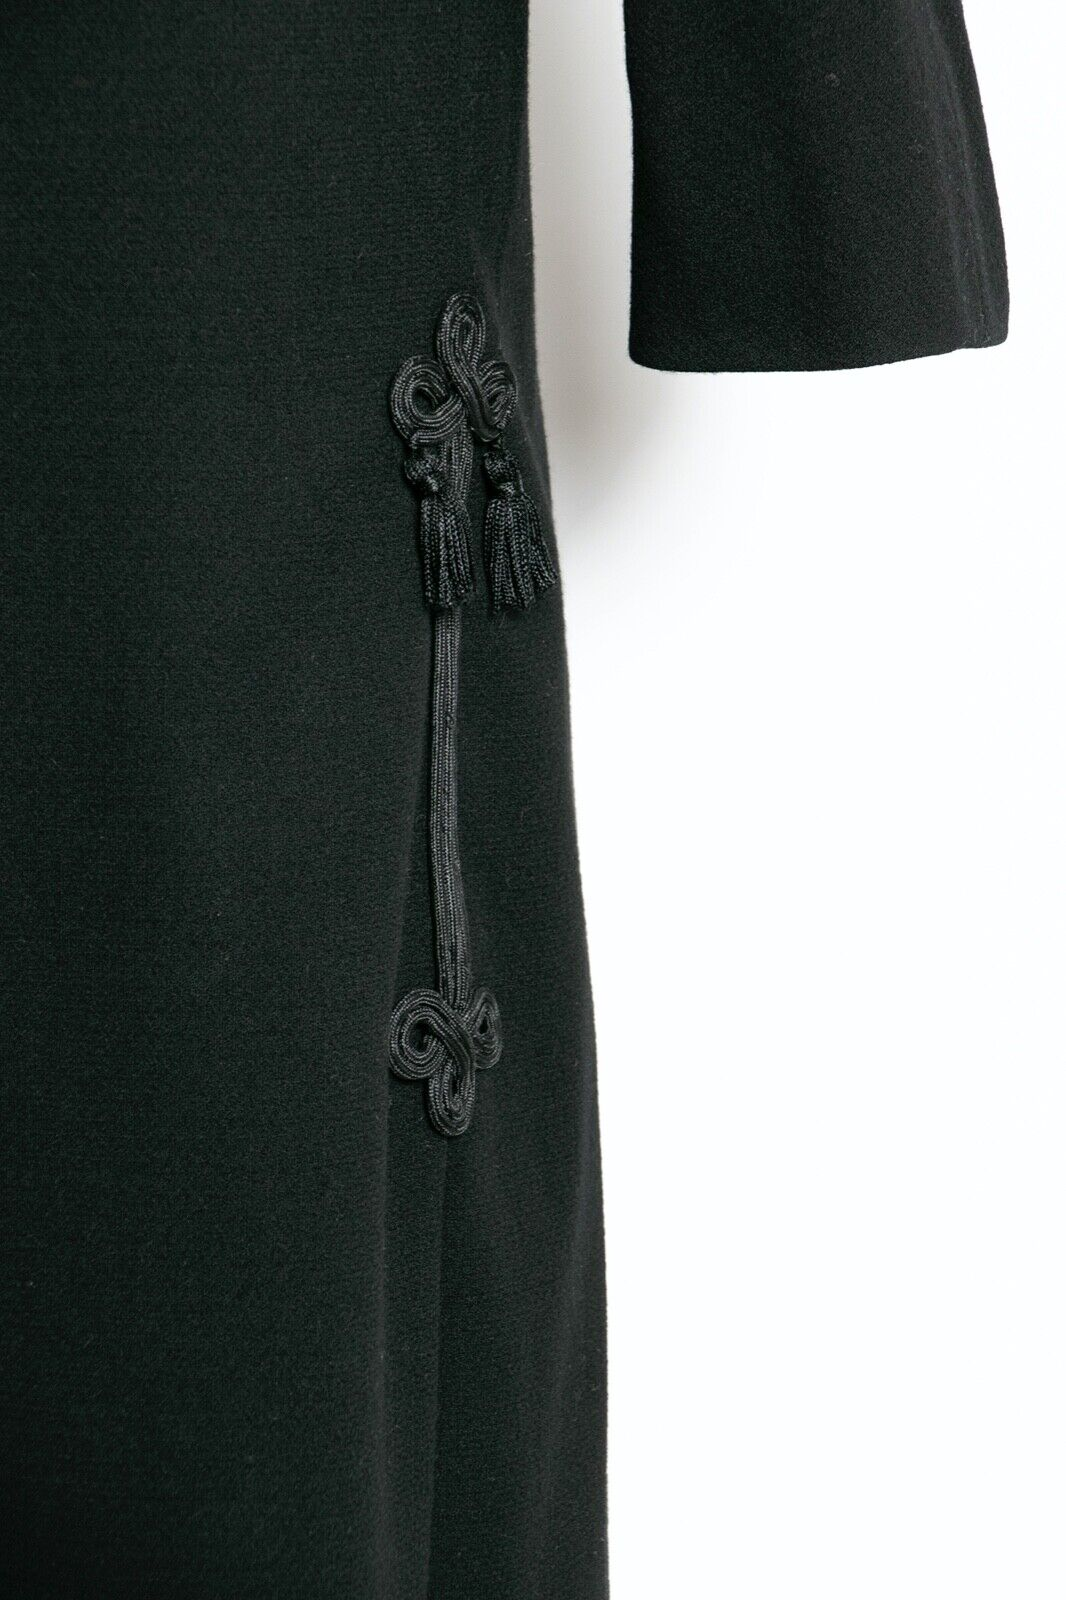 HARVEY BERIN 1960s Dress Black Wool Large - image 6